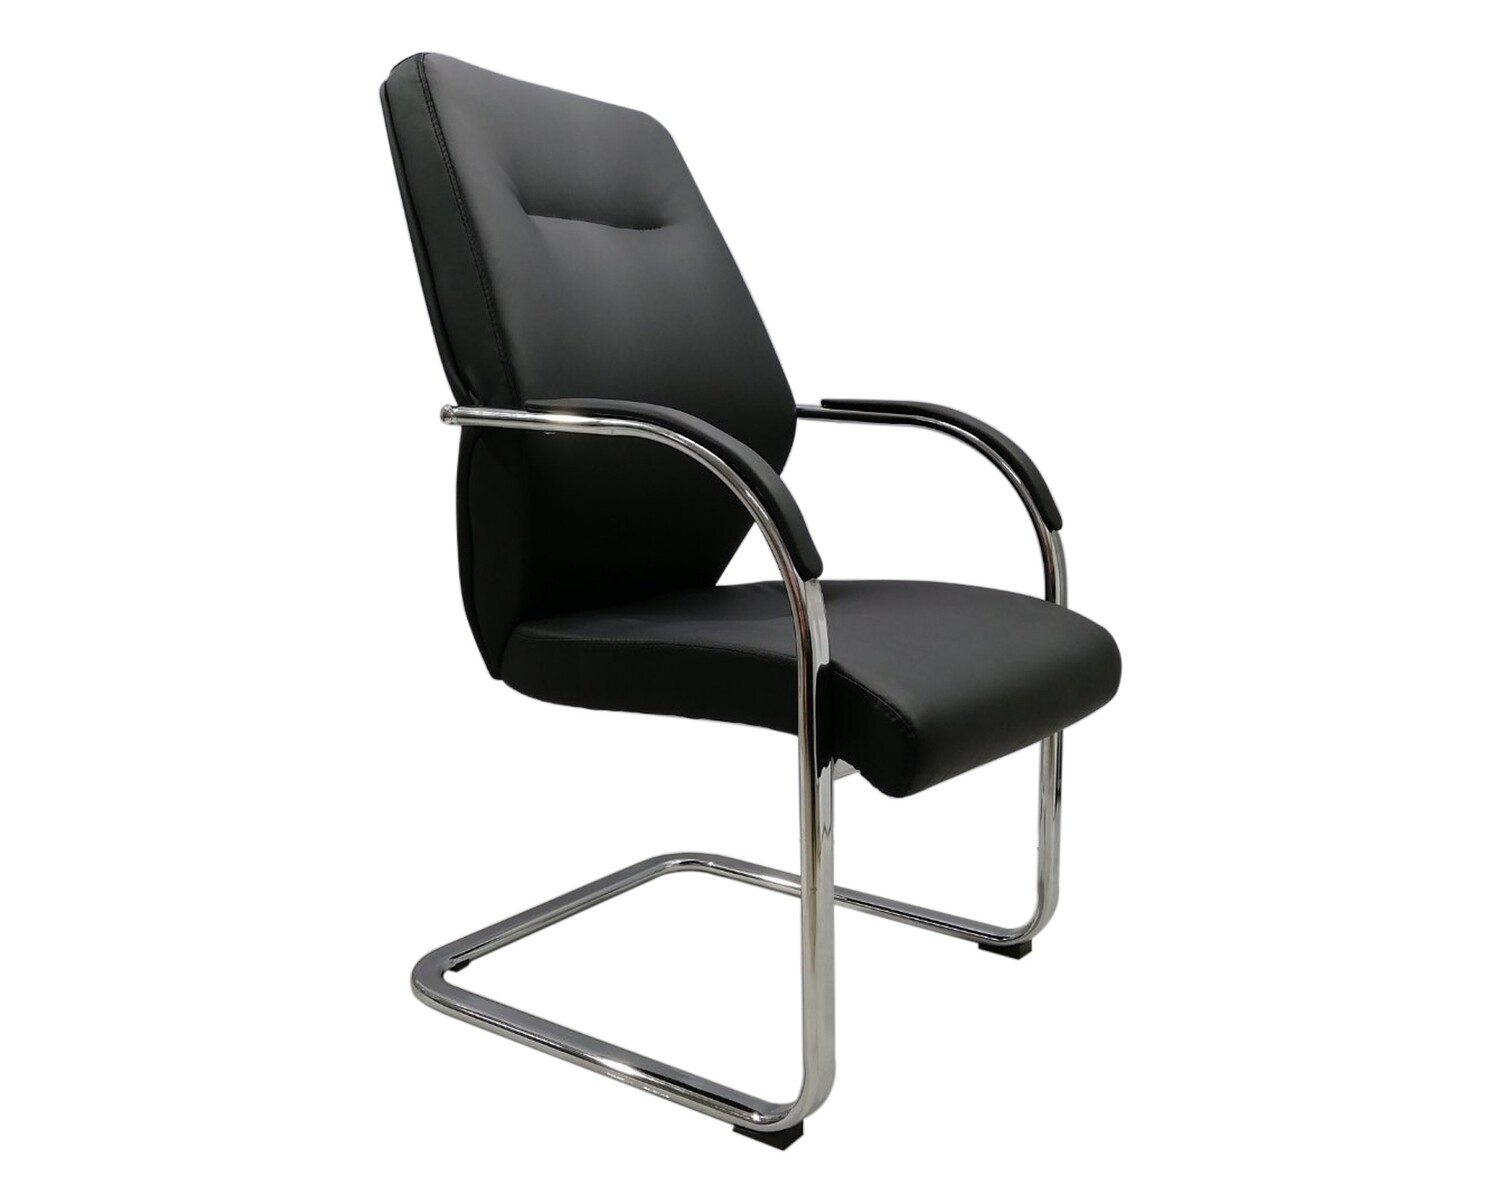 Ofix Deluxe-58 Mid Back PU Leather Chair (Black)